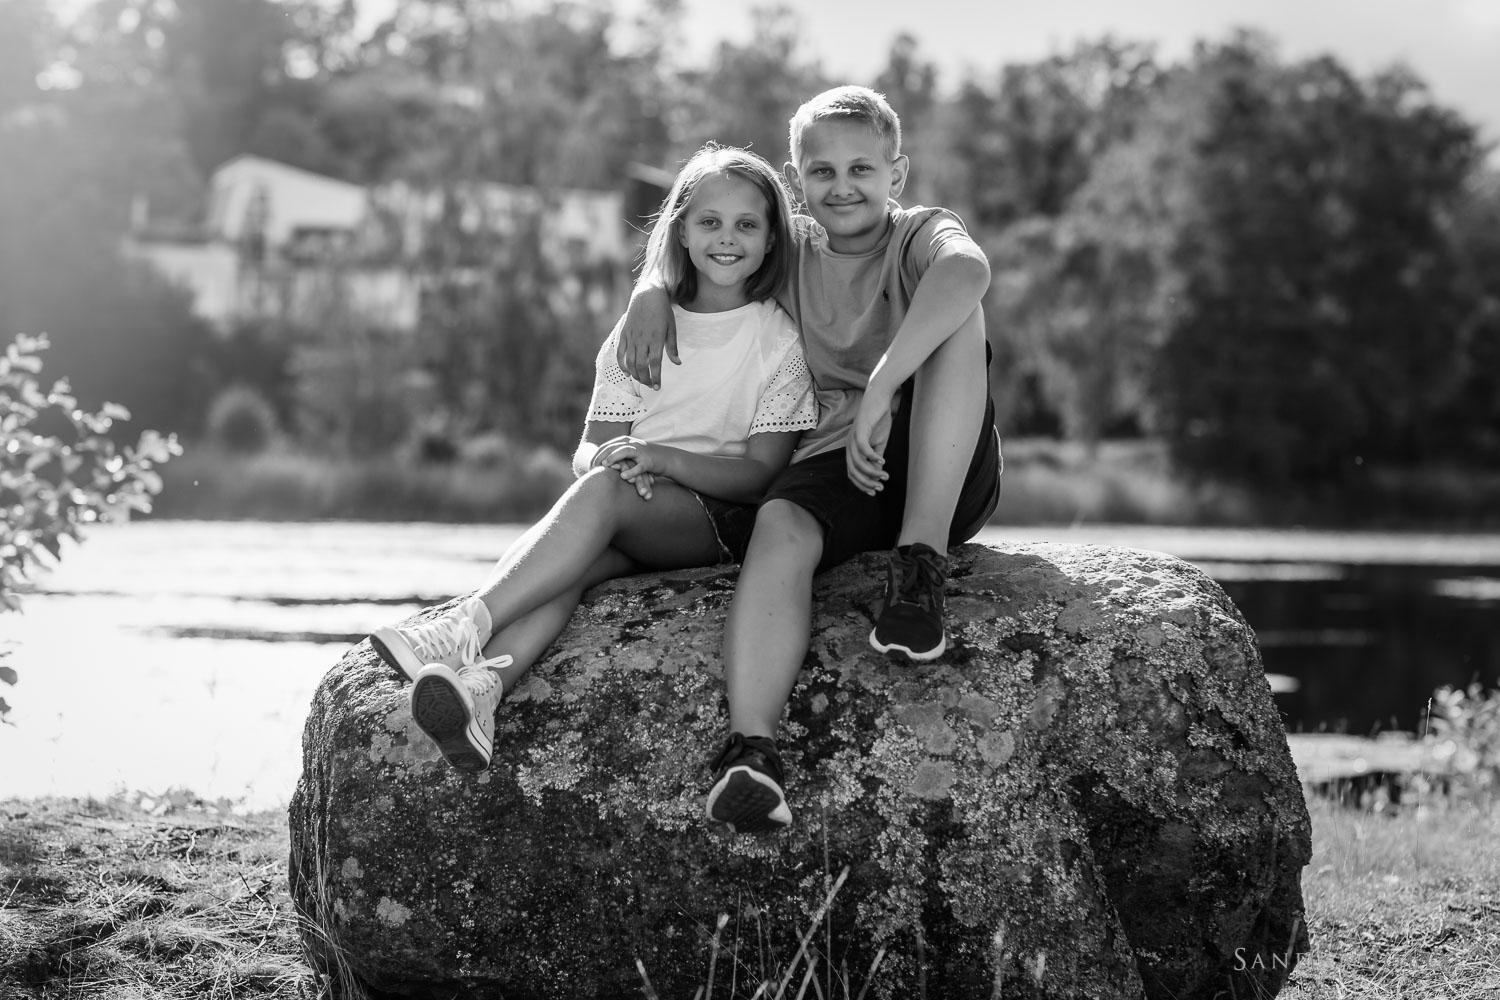 stockholm-sibling-photo-session-by-child-photographer-sandra-jolly.jpg